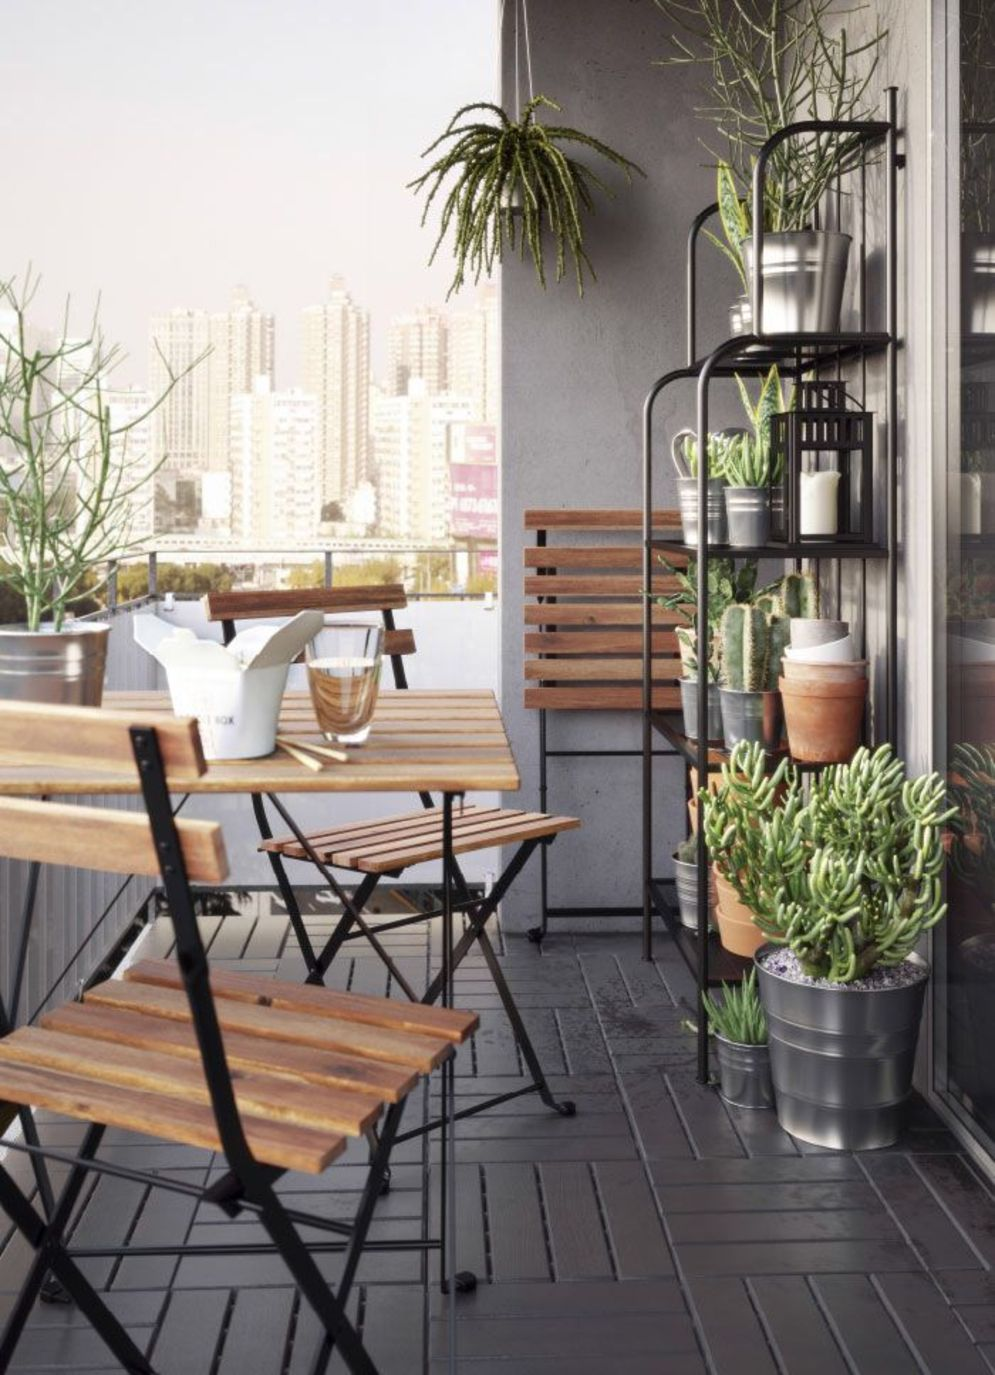 Clever apartment balcony conversion maximizing small space into functional living area Image 21